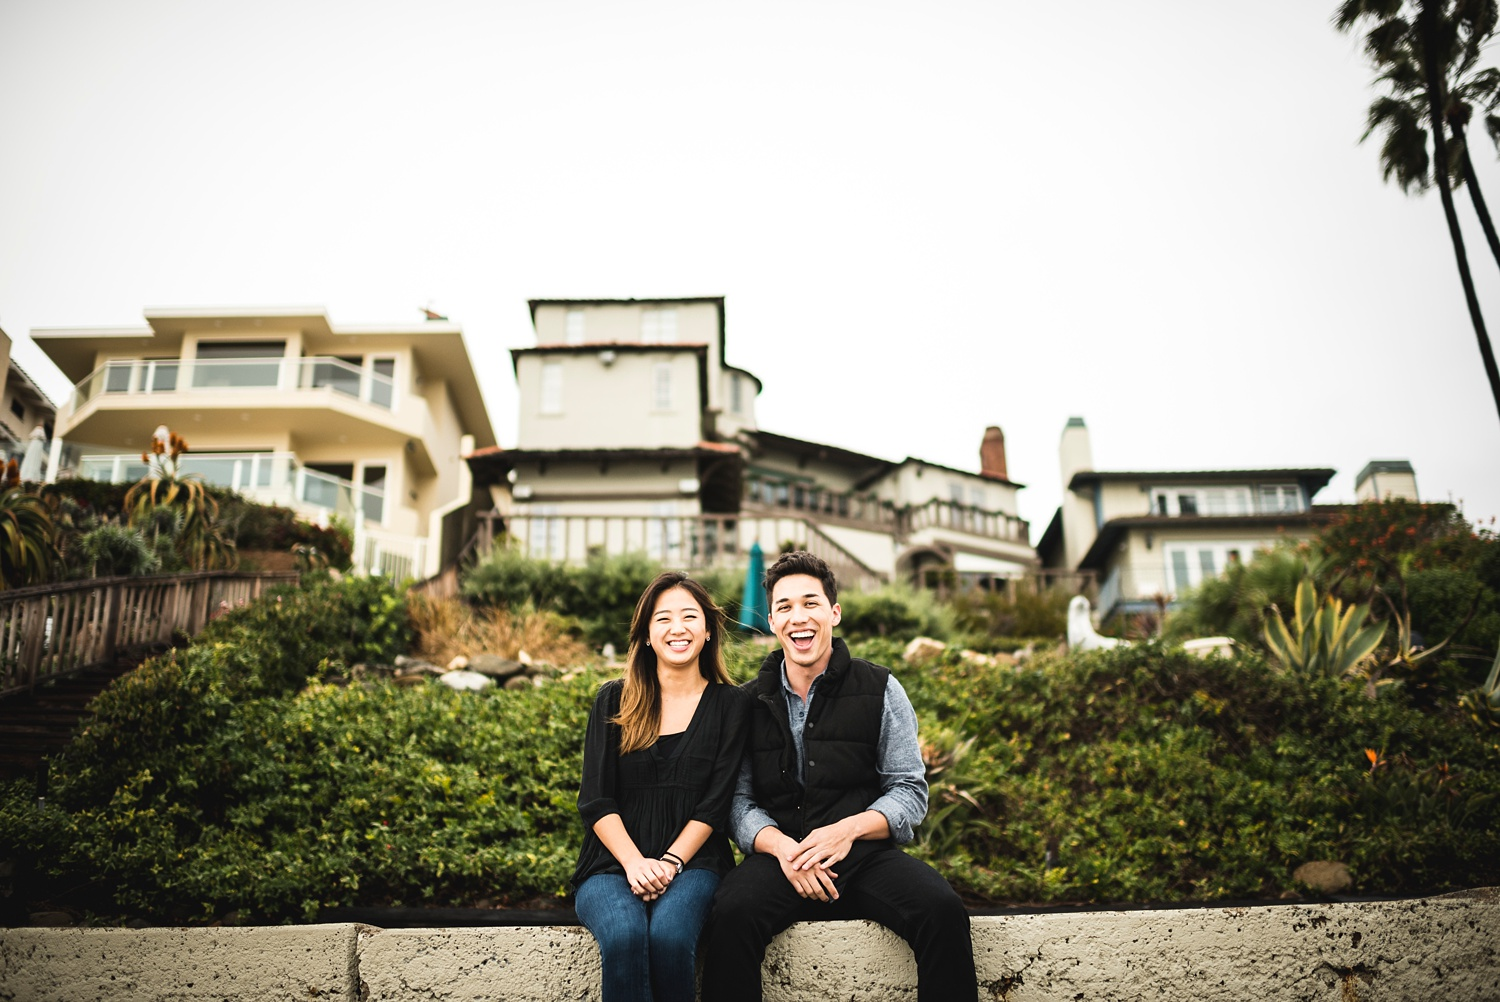 Nate-shepard-photography-engagment-california-wedding-photographer-denver-laguna-beach_0006.jpg